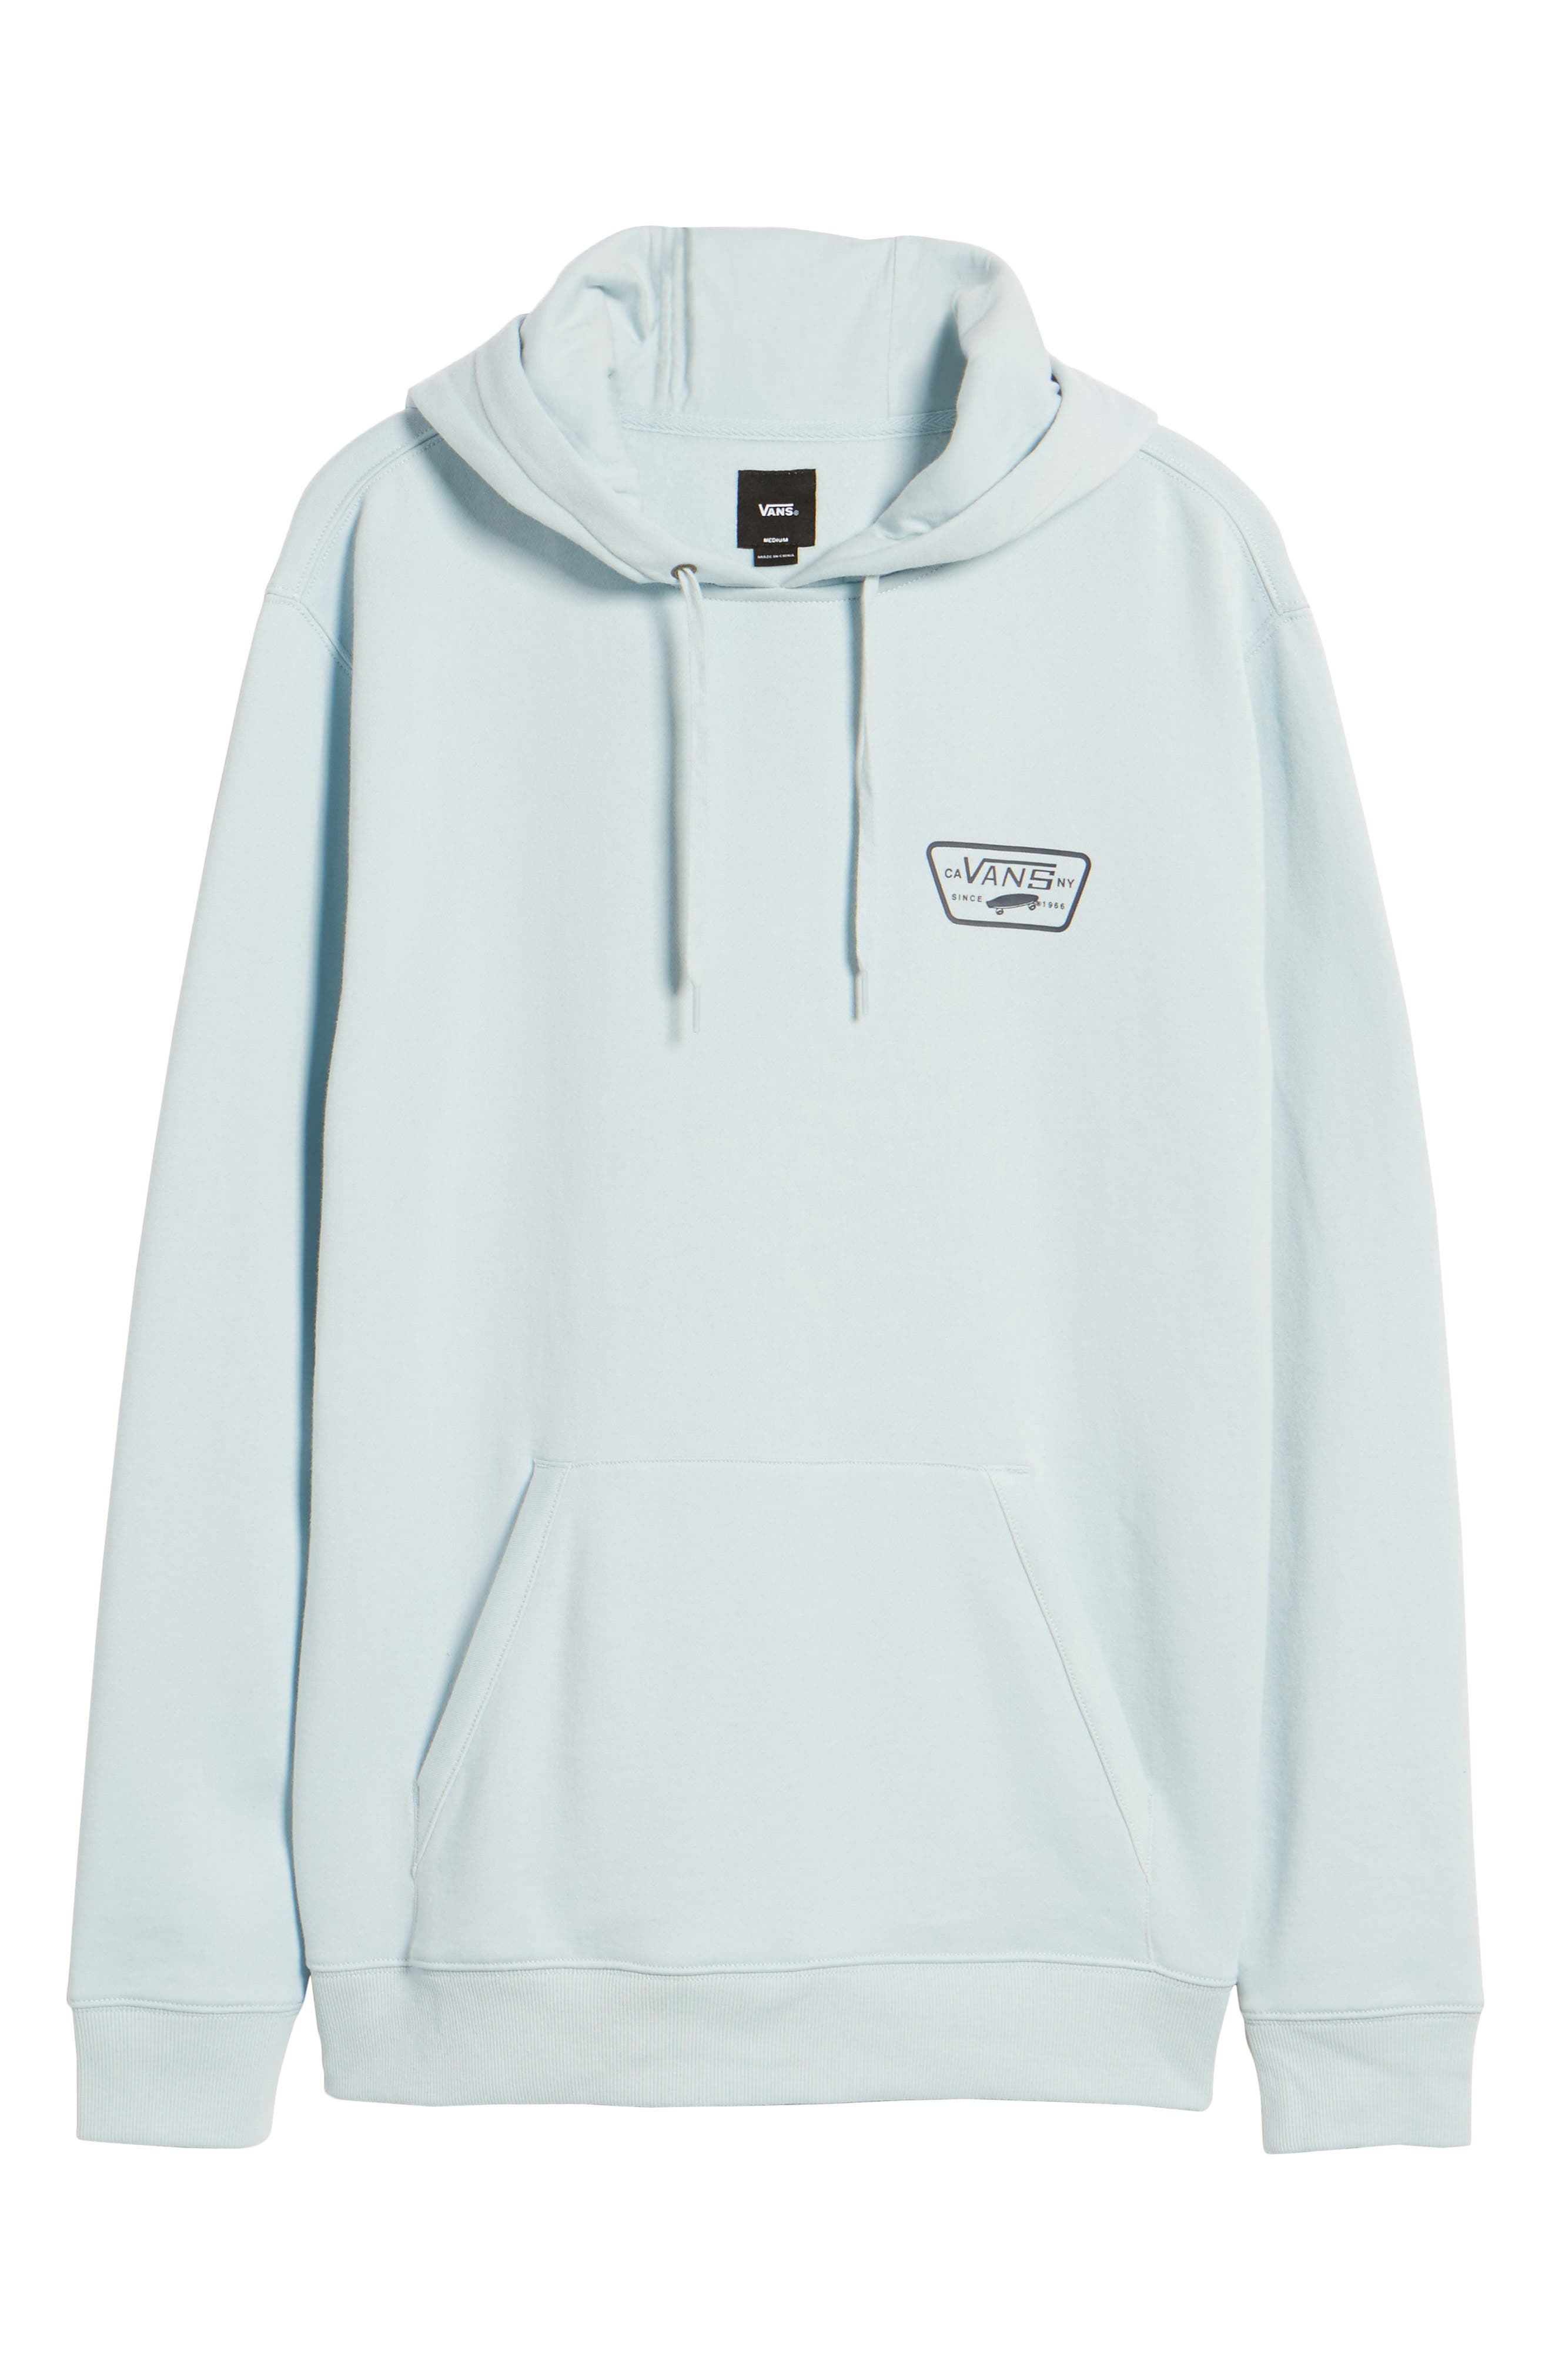 Full Patched Hoodie Sweatshirt,                             Alternate thumbnail 6, color,                             Baby Blue